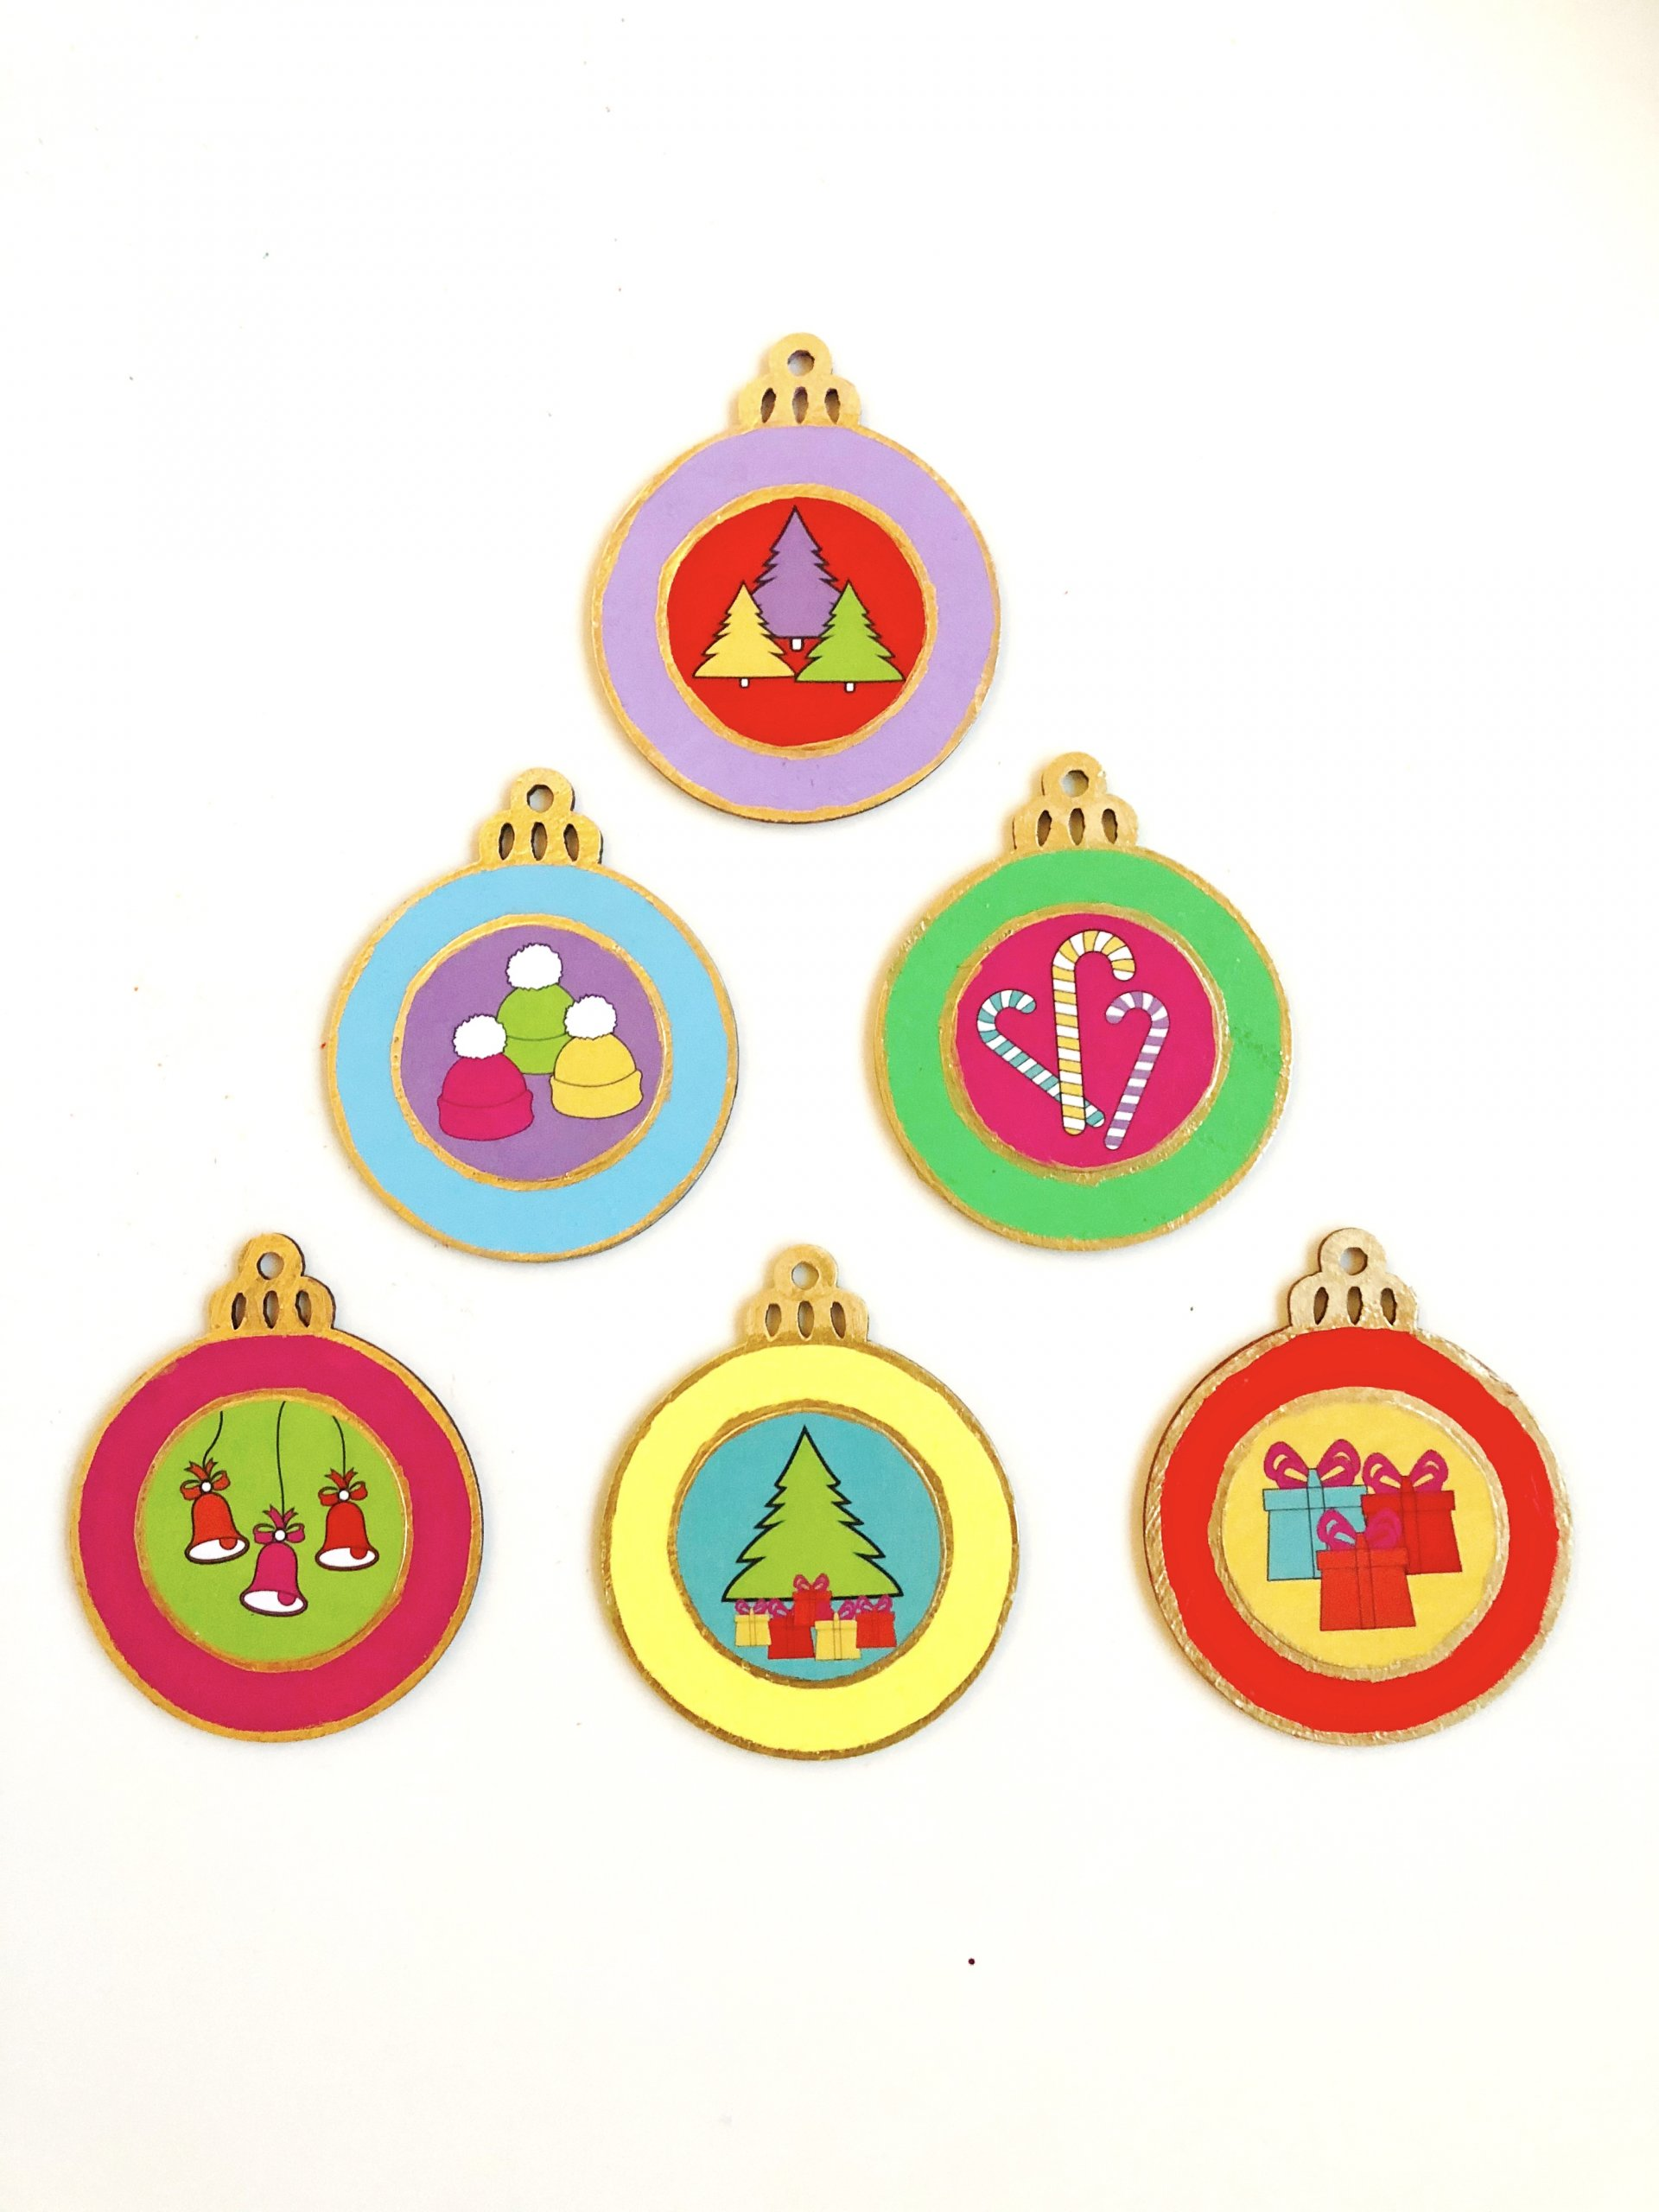 DIY decoupage ornaments with free printable